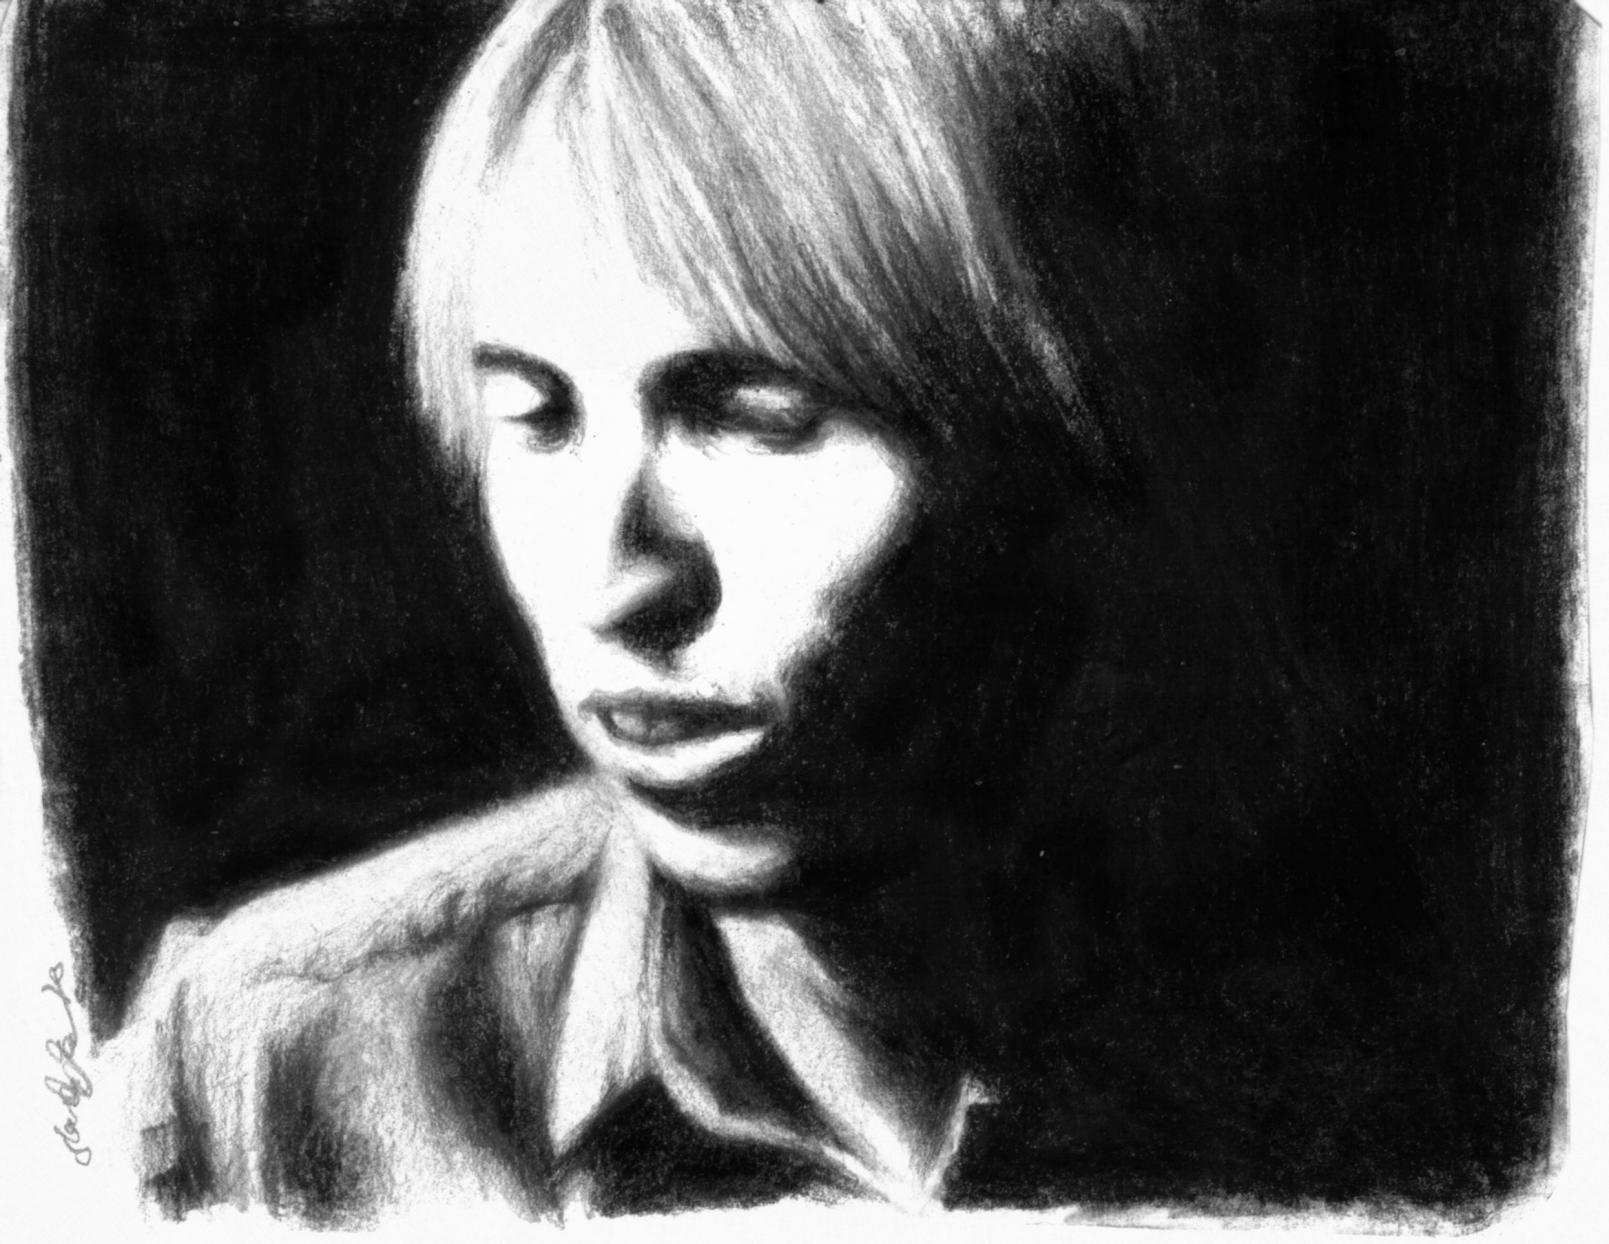 Tom Petty Portrait in Charocal by dwightyoakamfan on DeviantArt